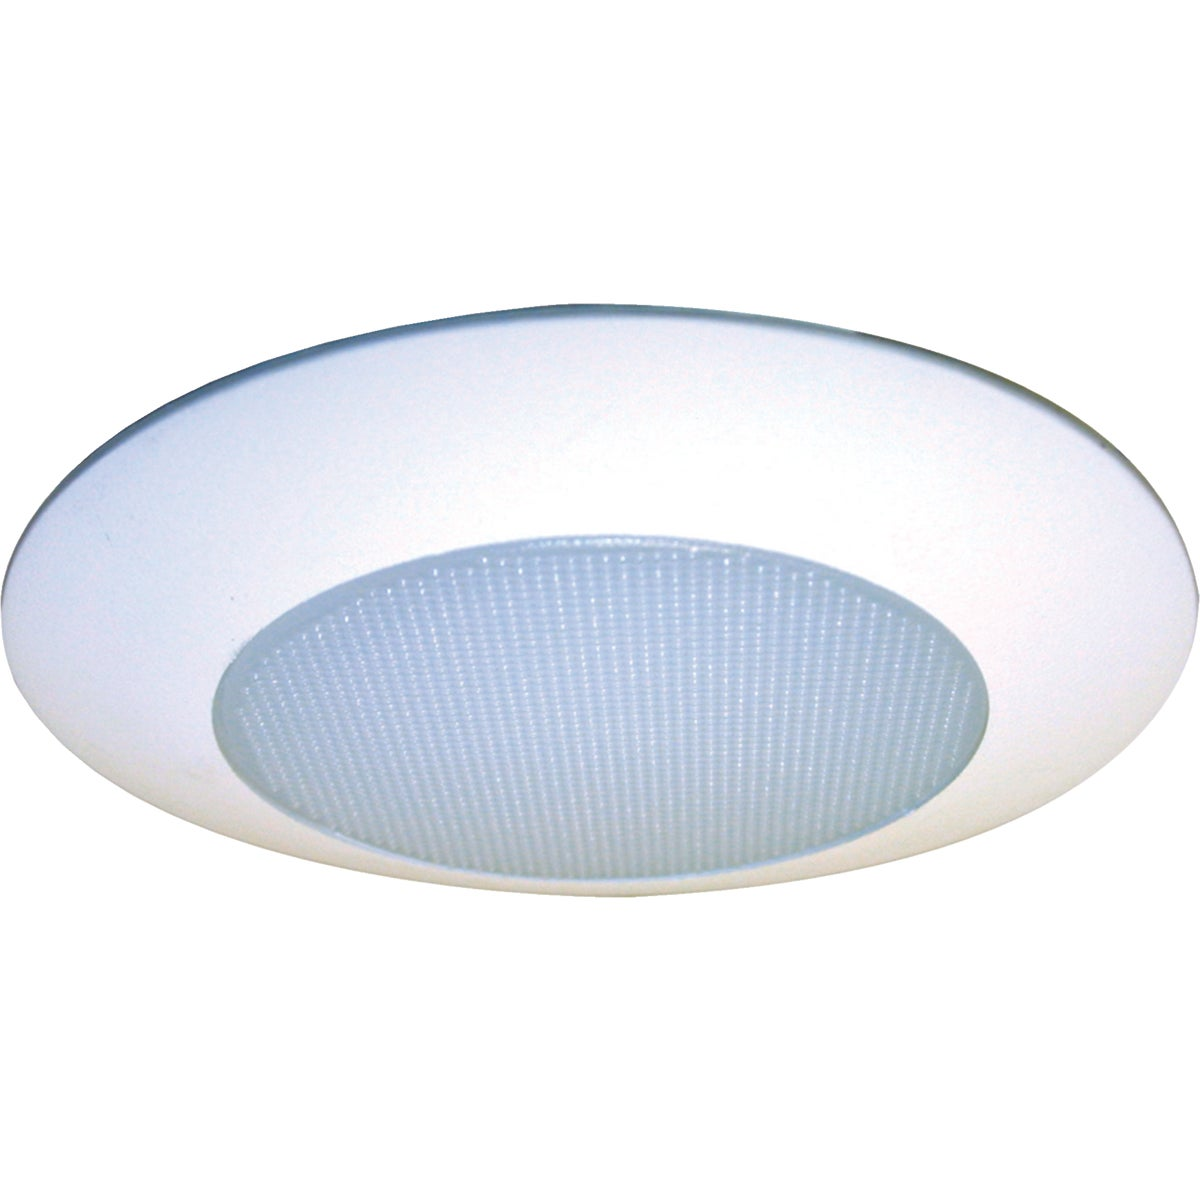 "6"" SHOWER LIGHT"